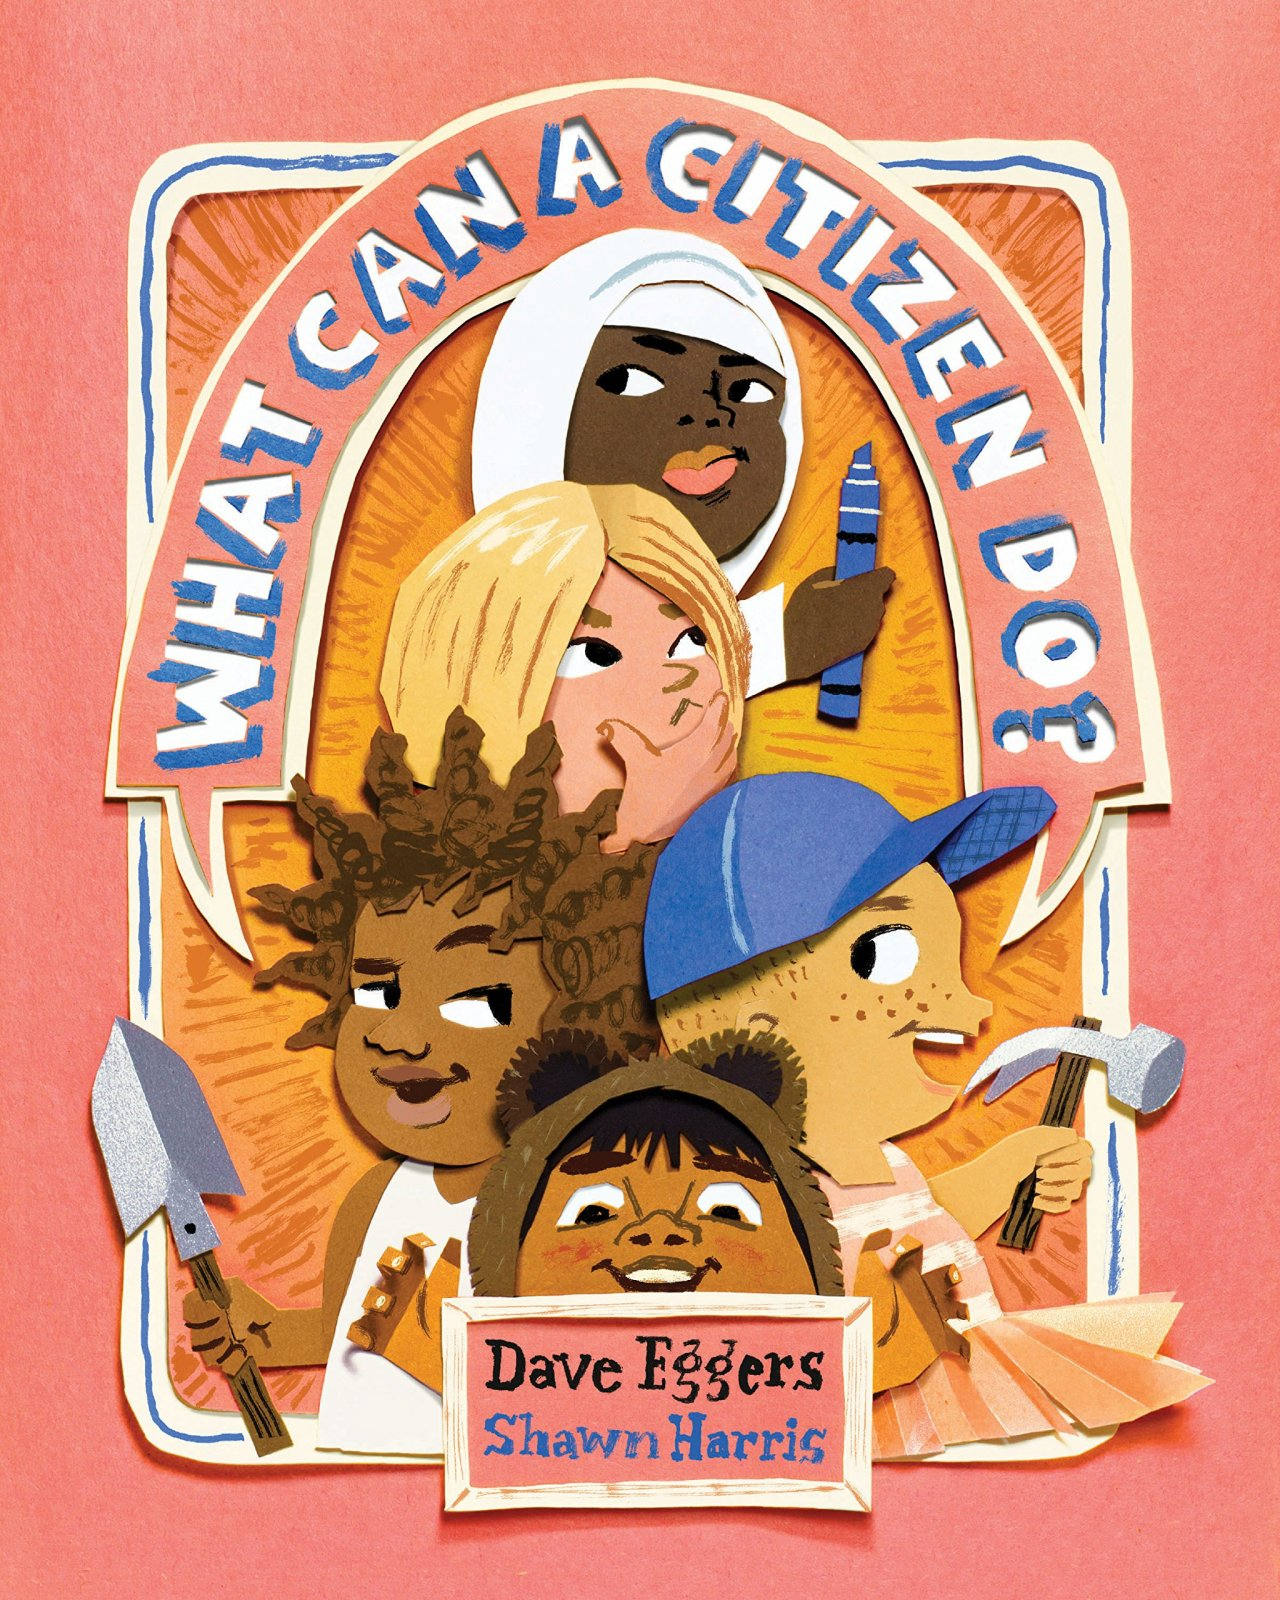 What Can A Citizen Do? by Dave Eggers and Shawn Harris